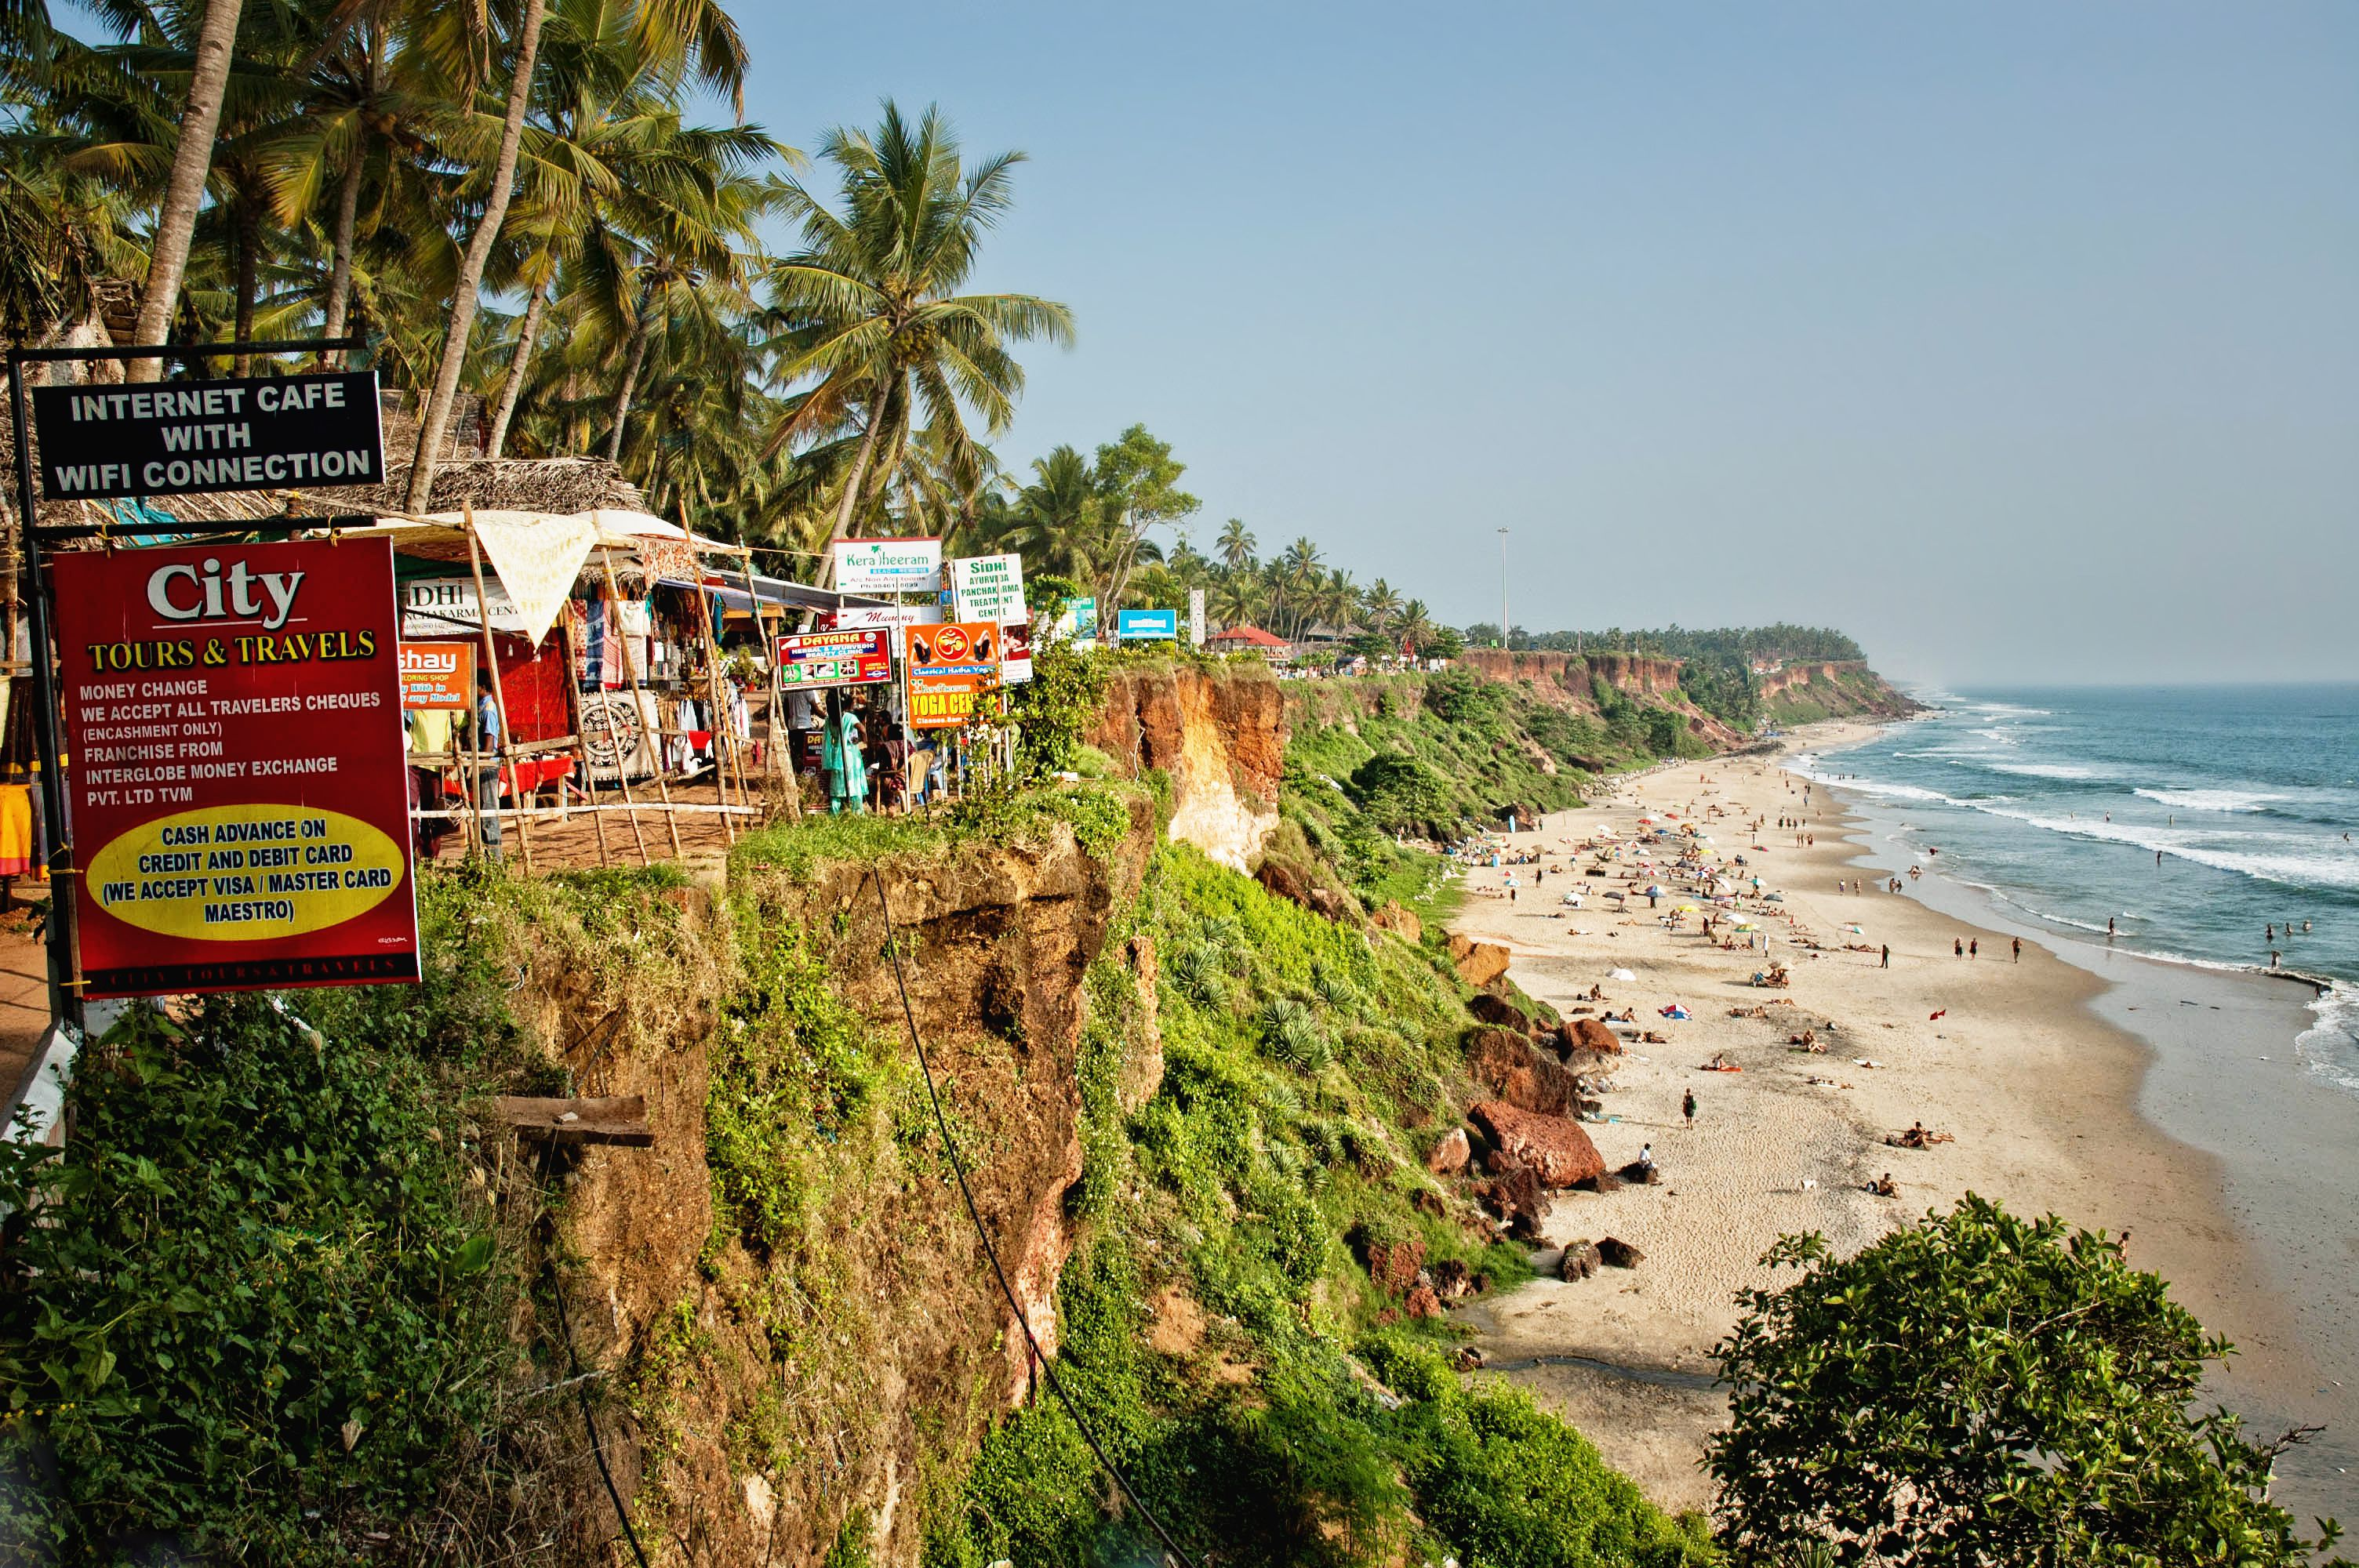 13 Top Beaches in India for 2019 India Tourist Map Of Coastline Cities on tourist beaches, tourist place of india, metro cities of india, first cities of india, industrial cities of india, major cities of india, coastal cities of india, tourist attractions in india, religious cities of india,